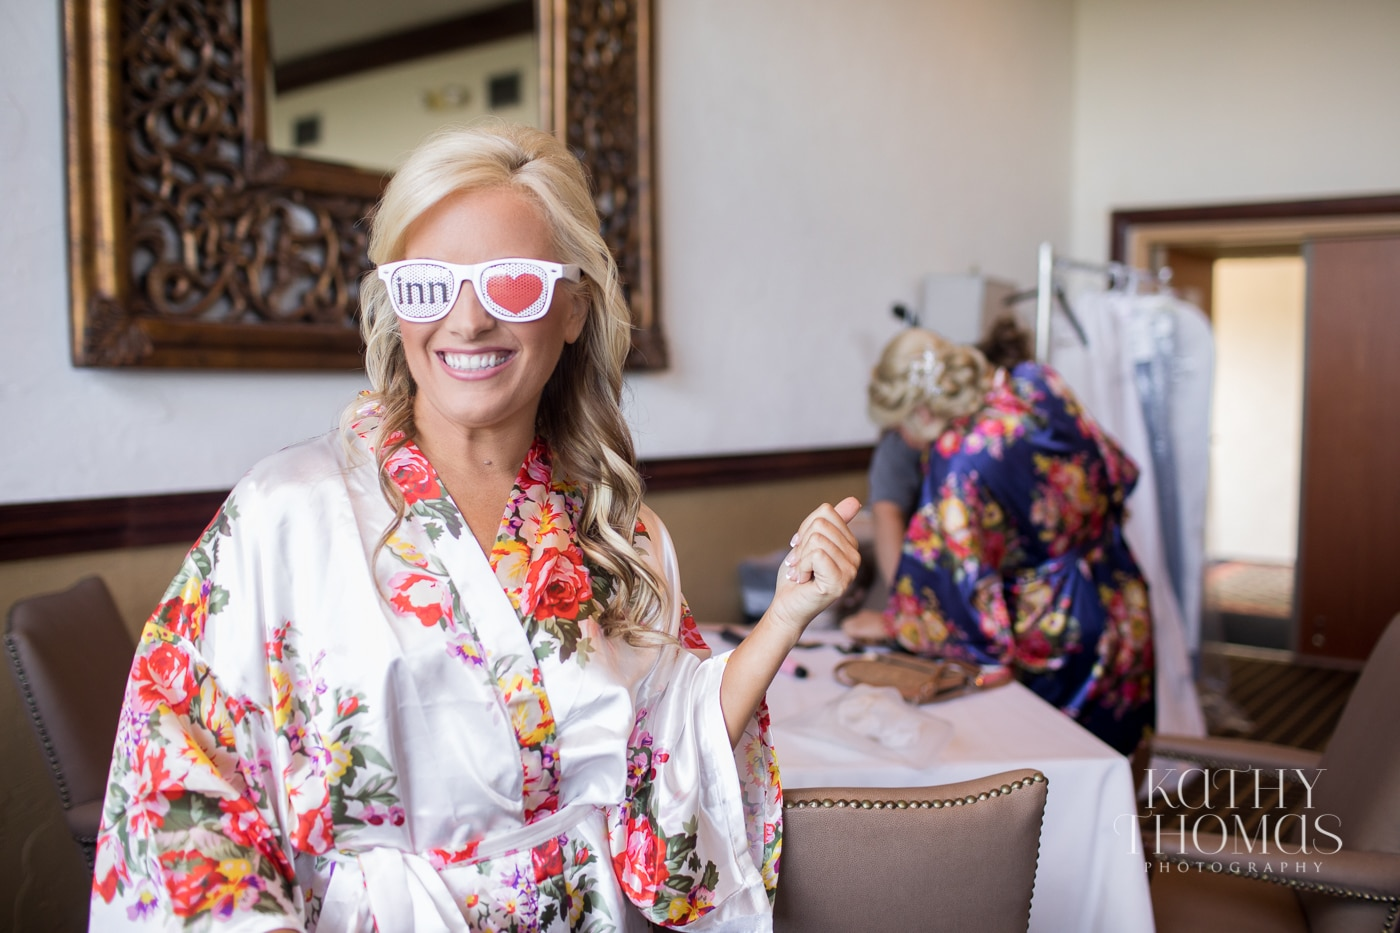 Bride in floral robe with Mission Inn sunglasses